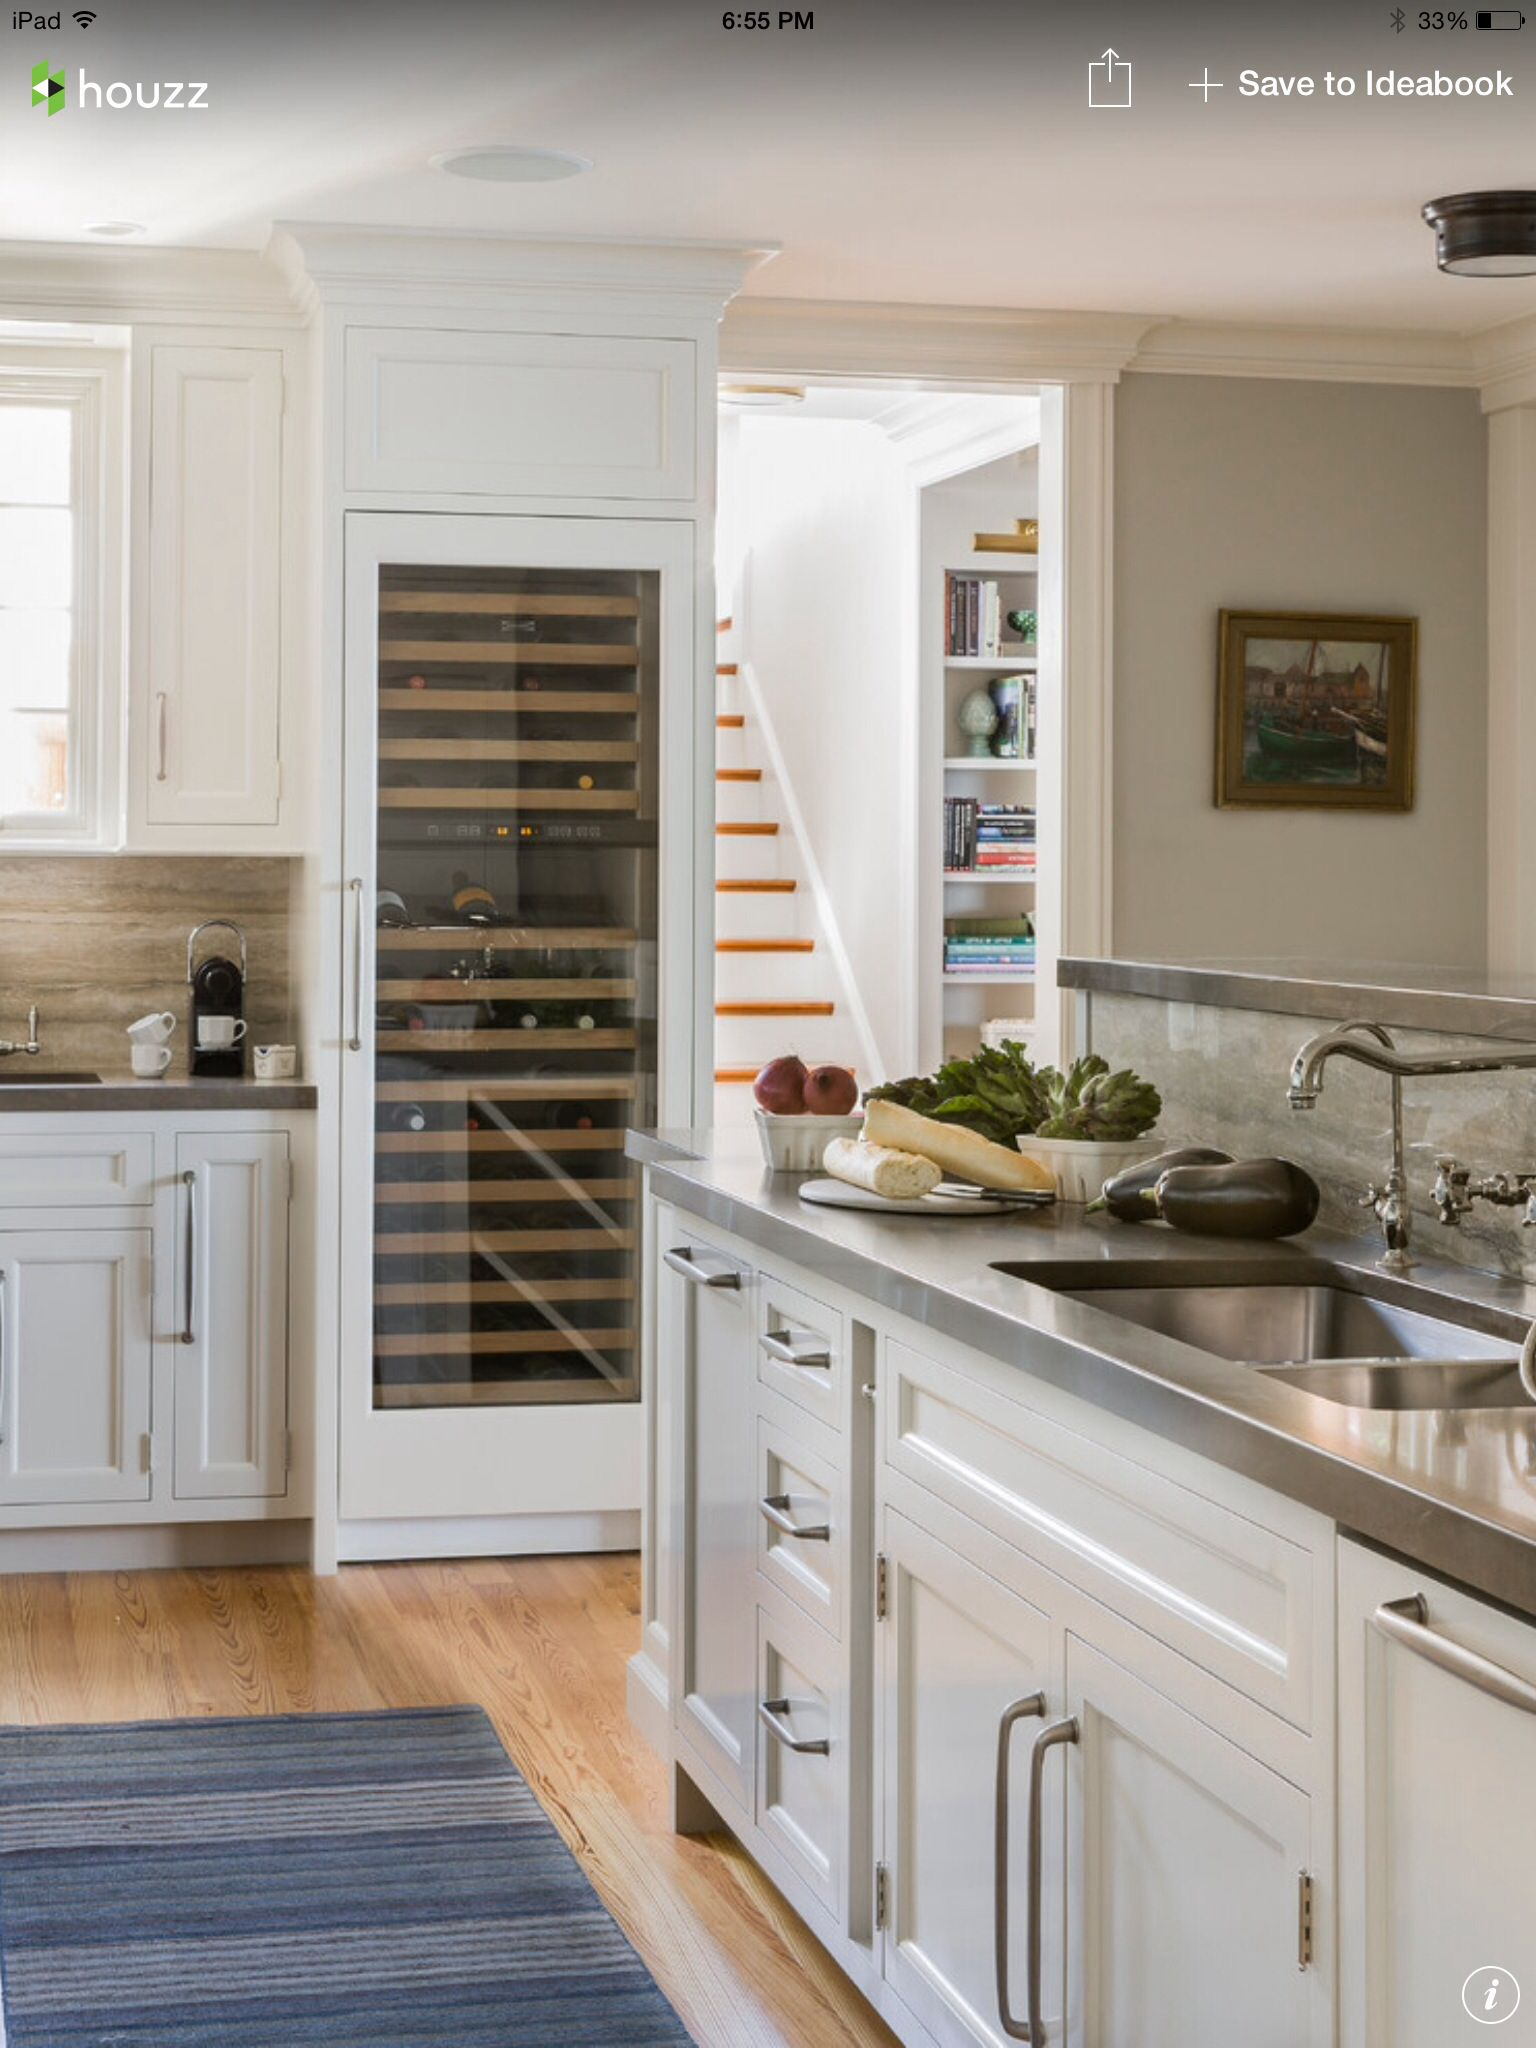 Love The Full Size Wine Fridge Kitchen Design Kitchen Styling Built In Refrigerators